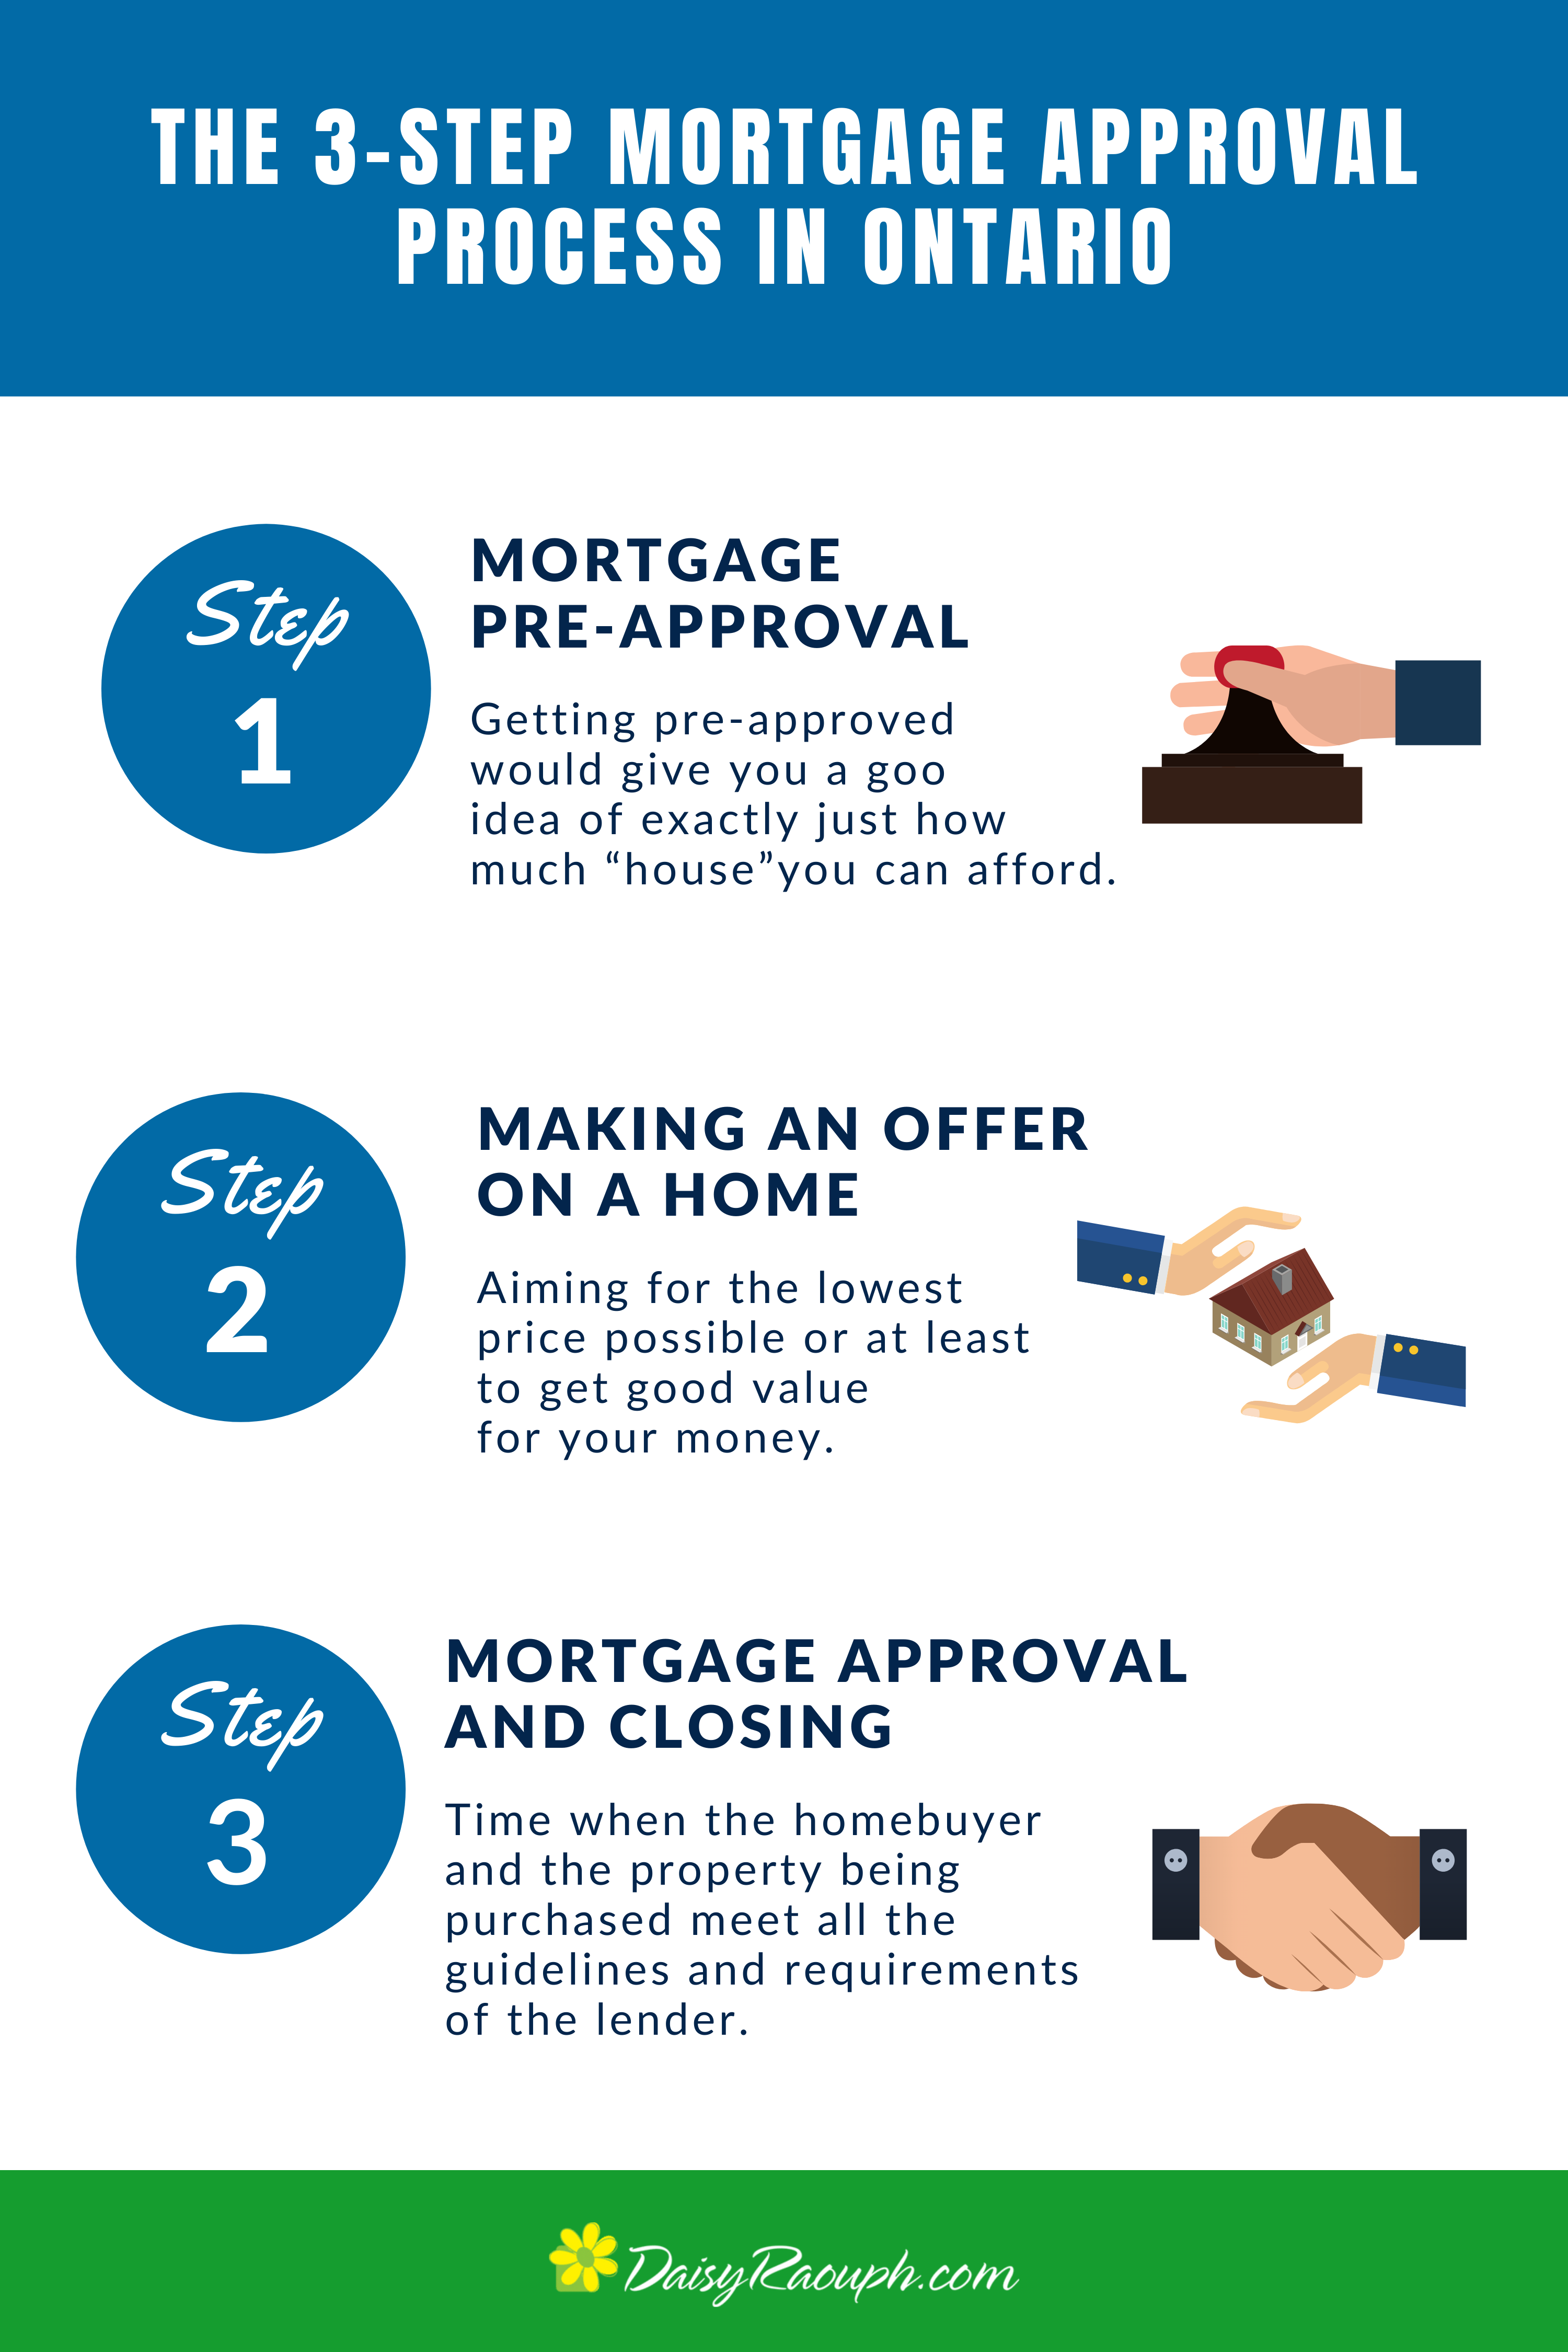 The 3Step Mortgage Approval Process in Ontario in 2020